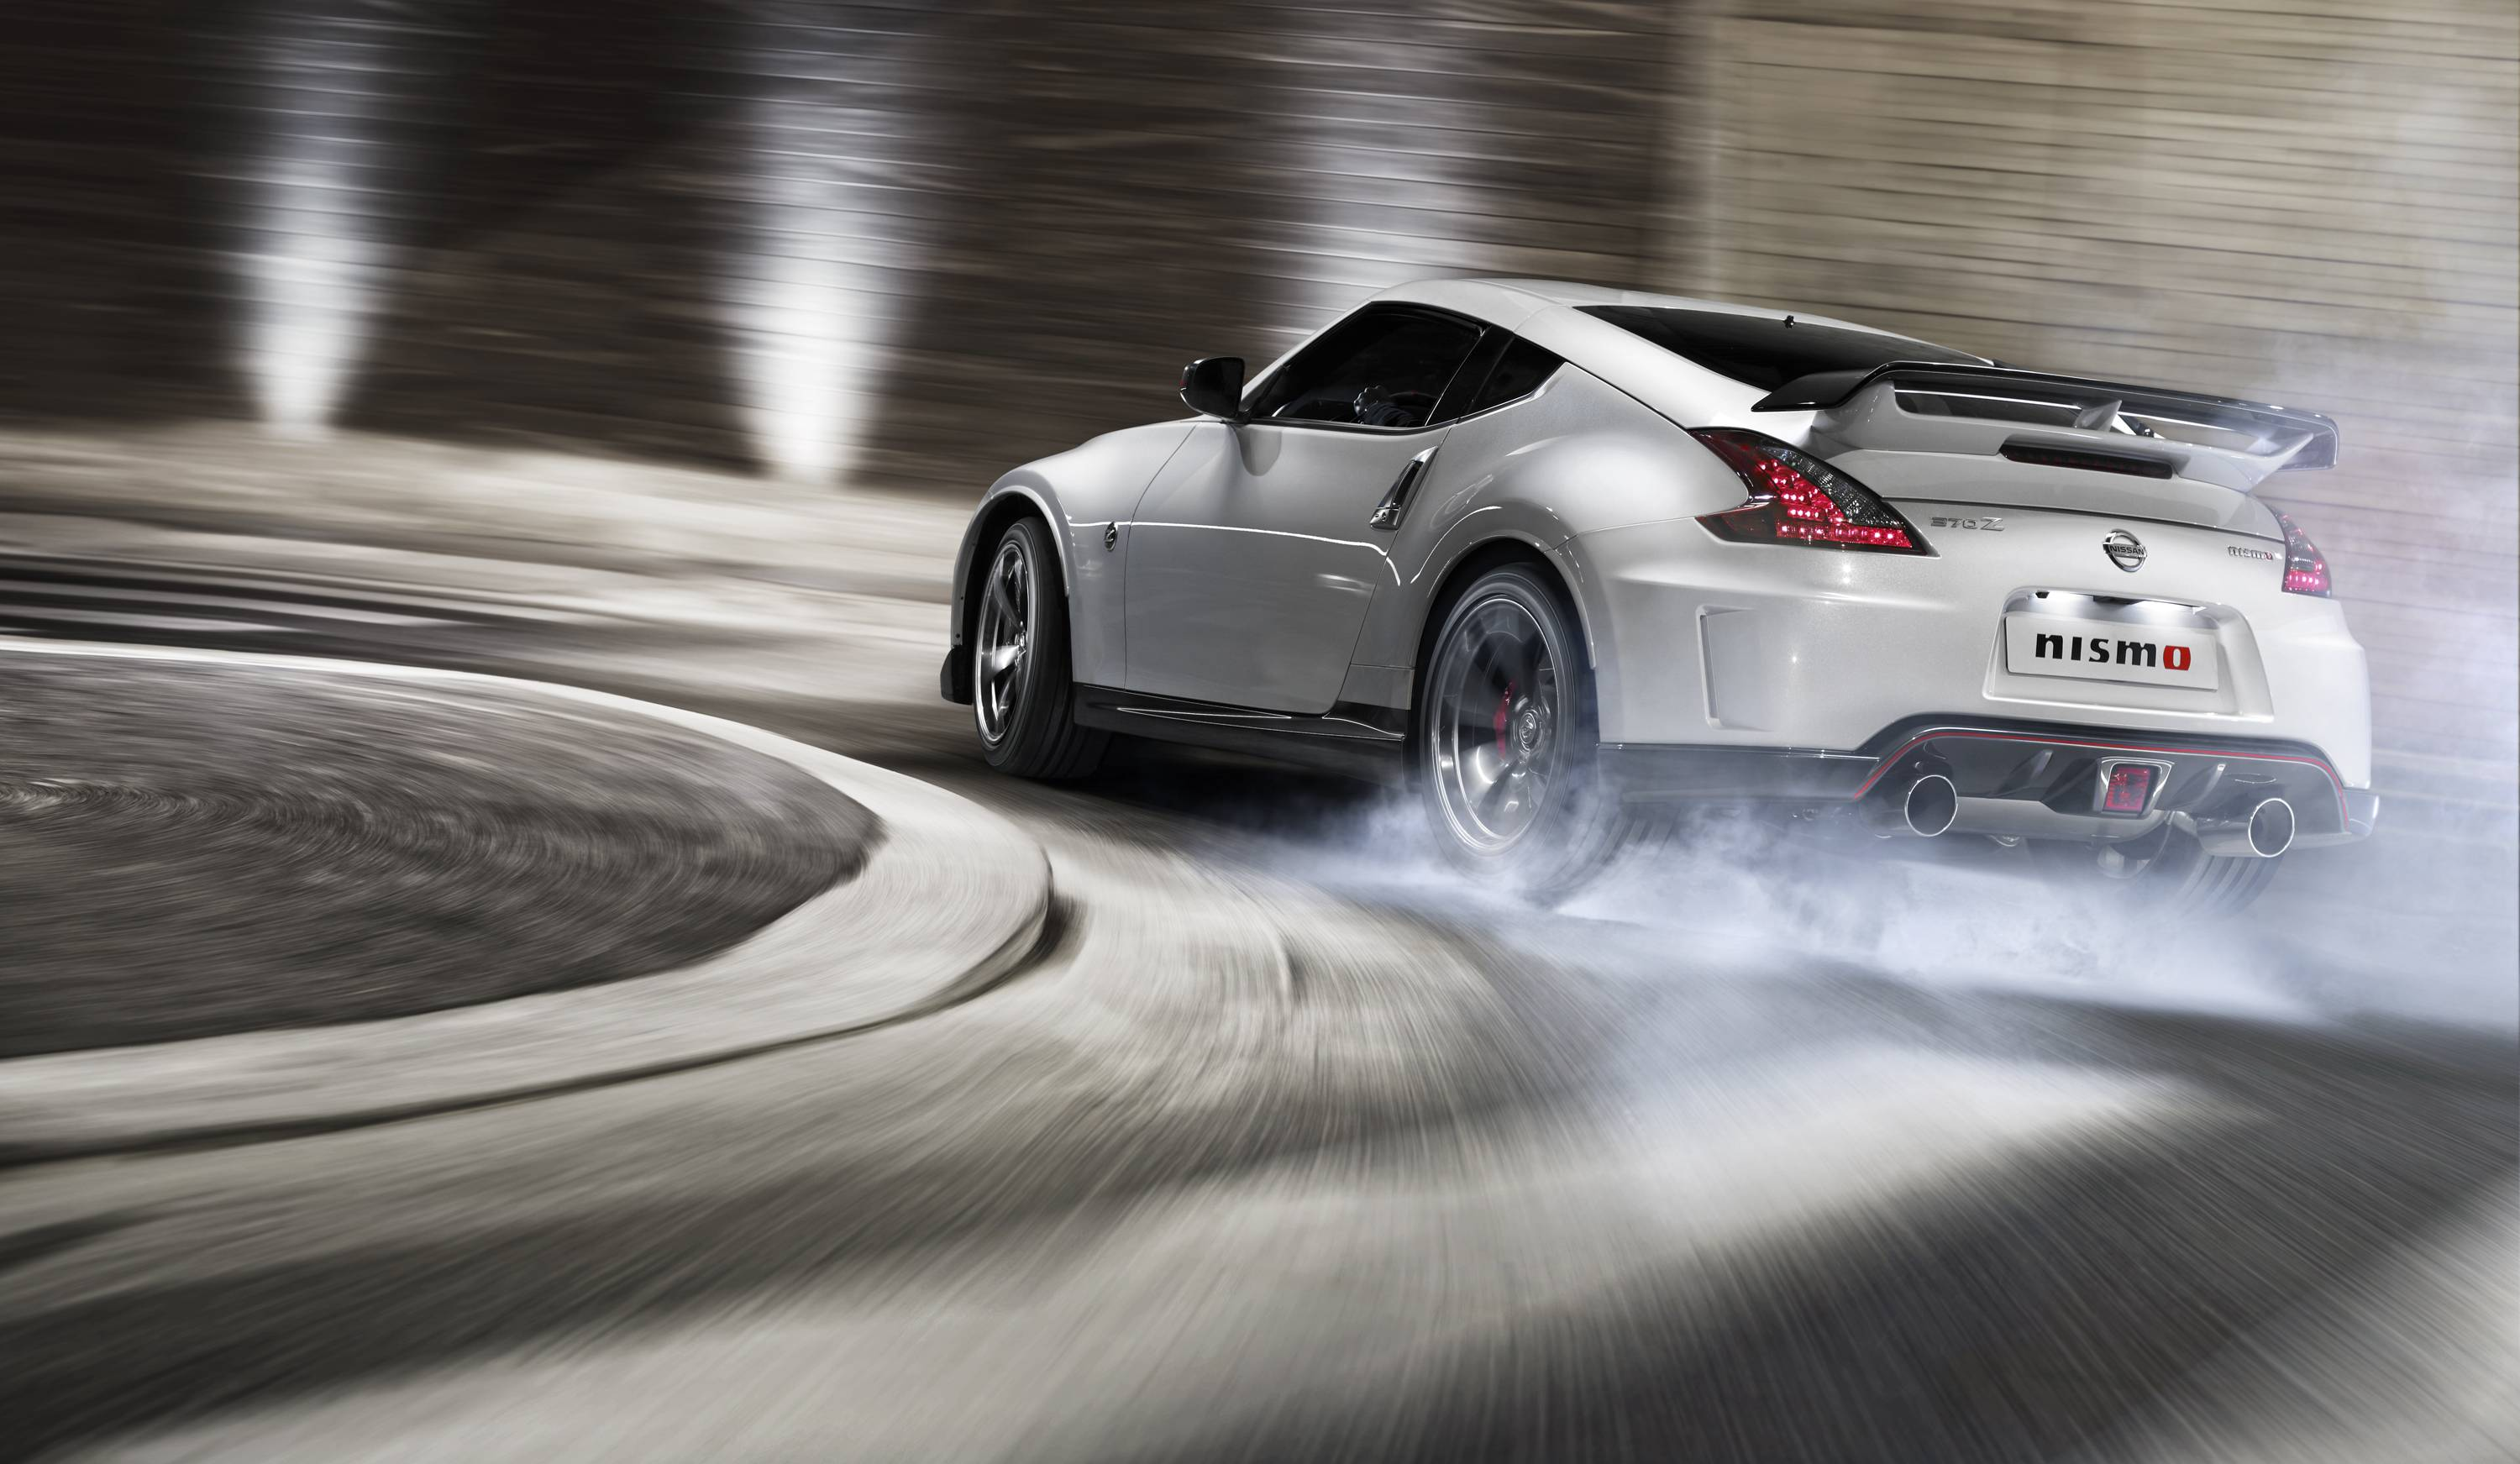 370z nismo wallpapers wallpaper cave. Black Bedroom Furniture Sets. Home Design Ideas